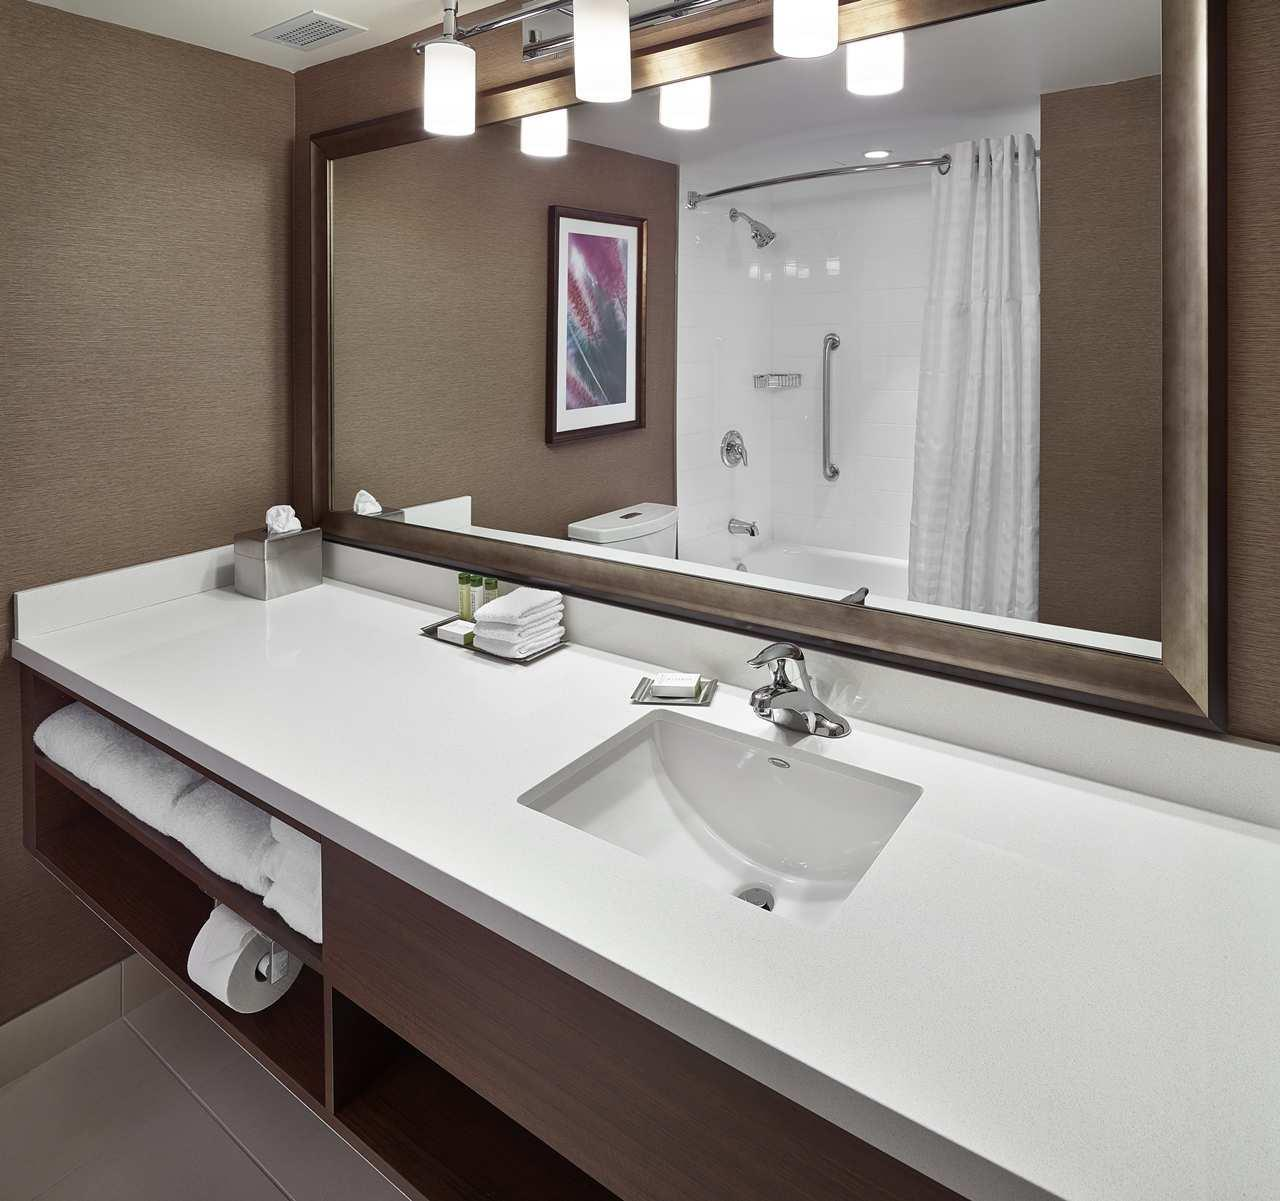 DoubleTree by Hilton Hotel West Edmonton in Edmonton: Two Queen Beds Bathroom with Tub